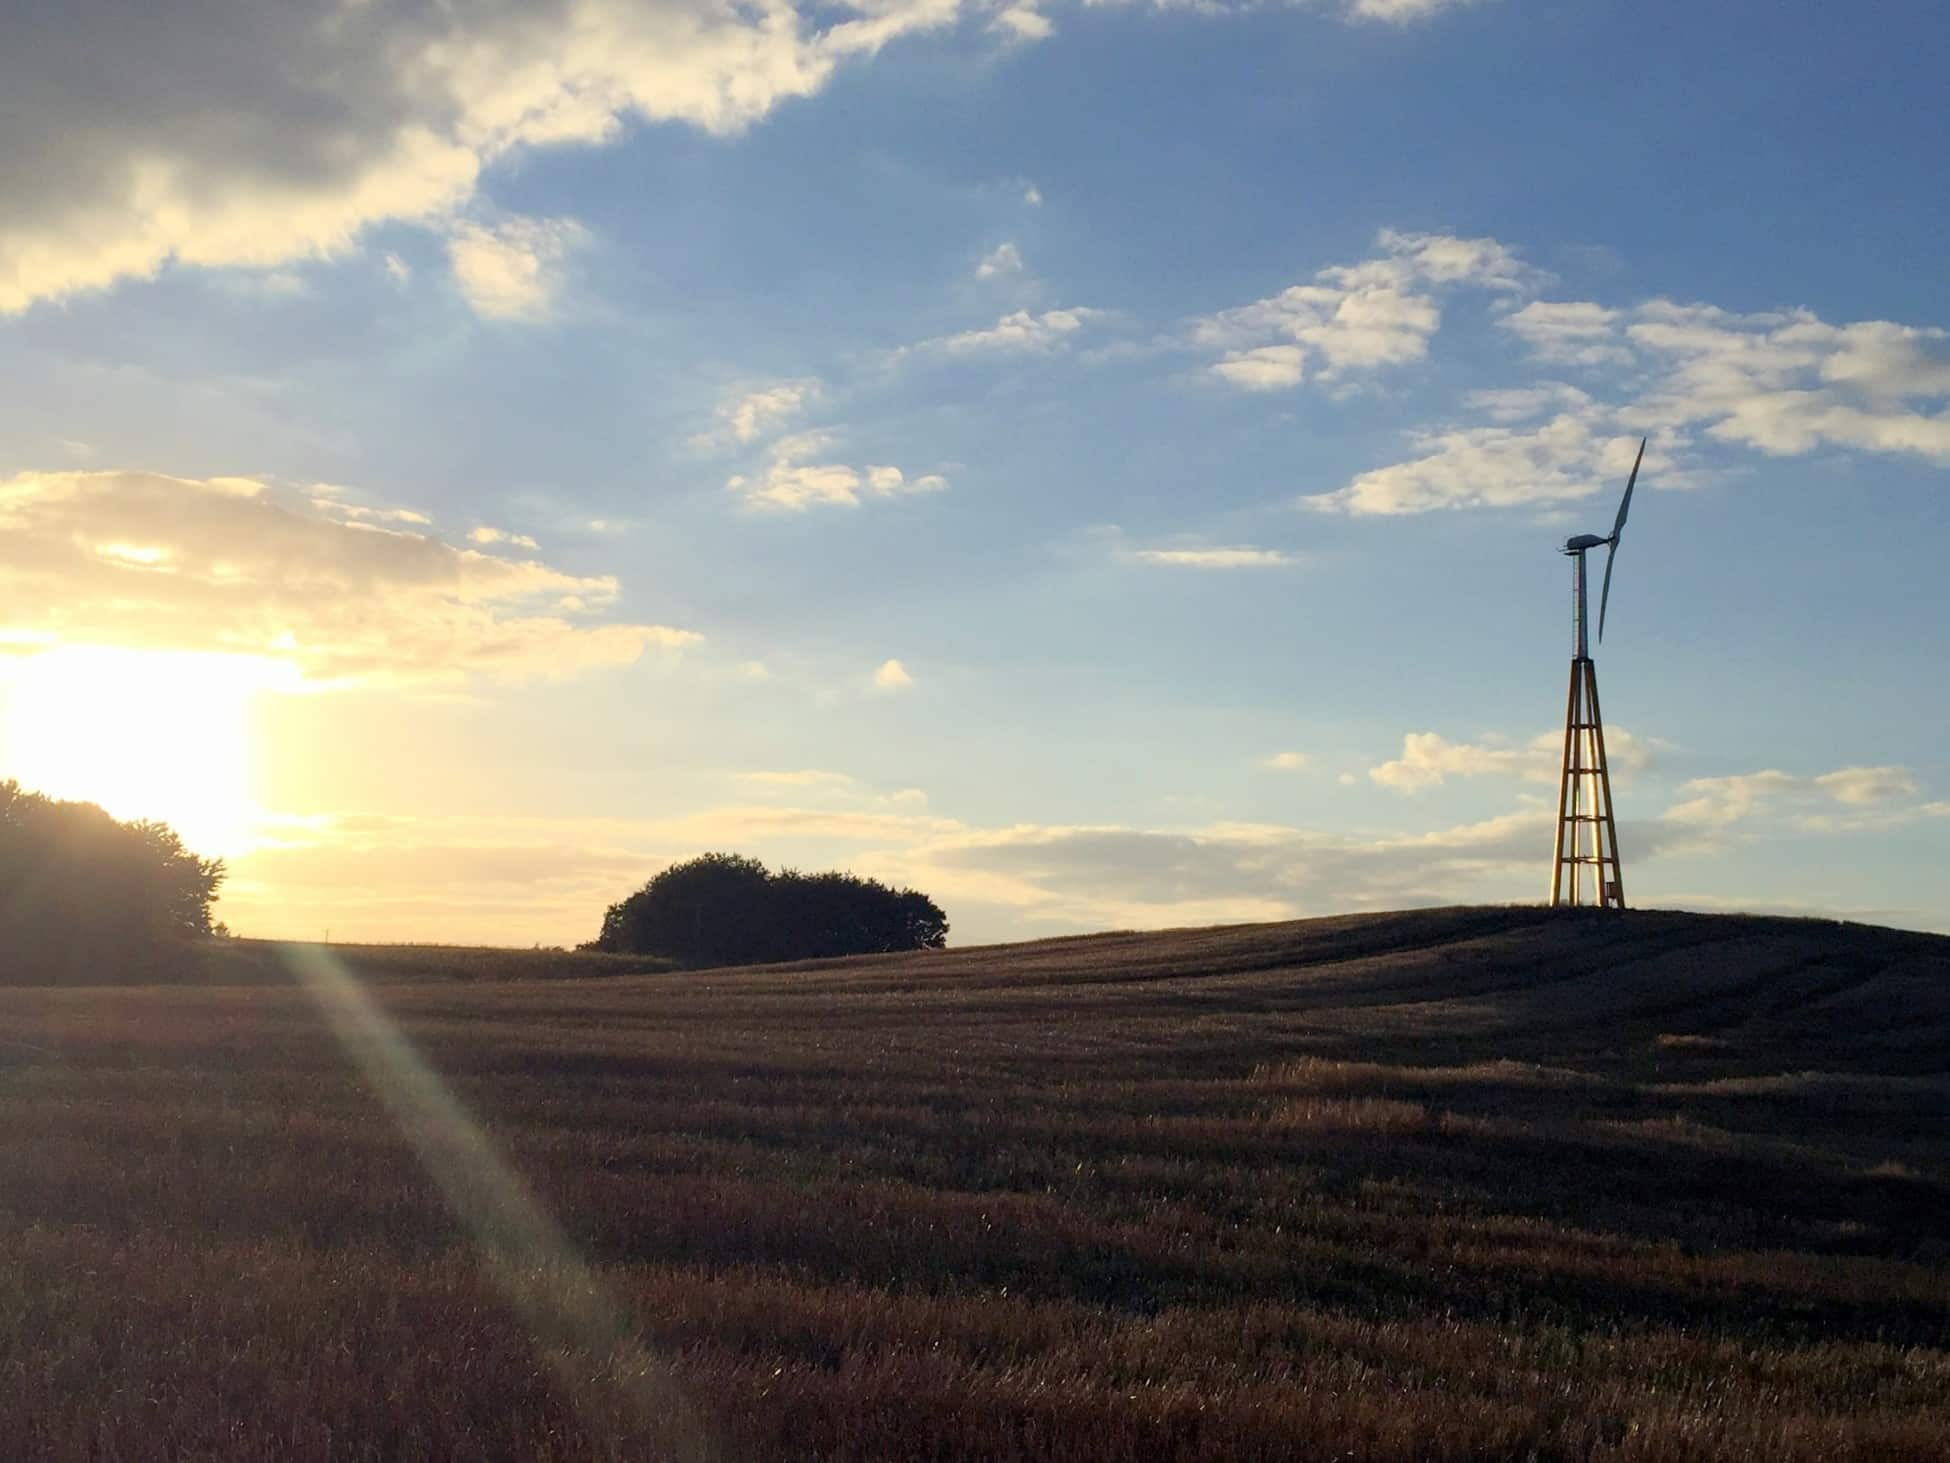 Dalifant small wind turbine 11 kW on a wooden tower installed on a farm field at sunset